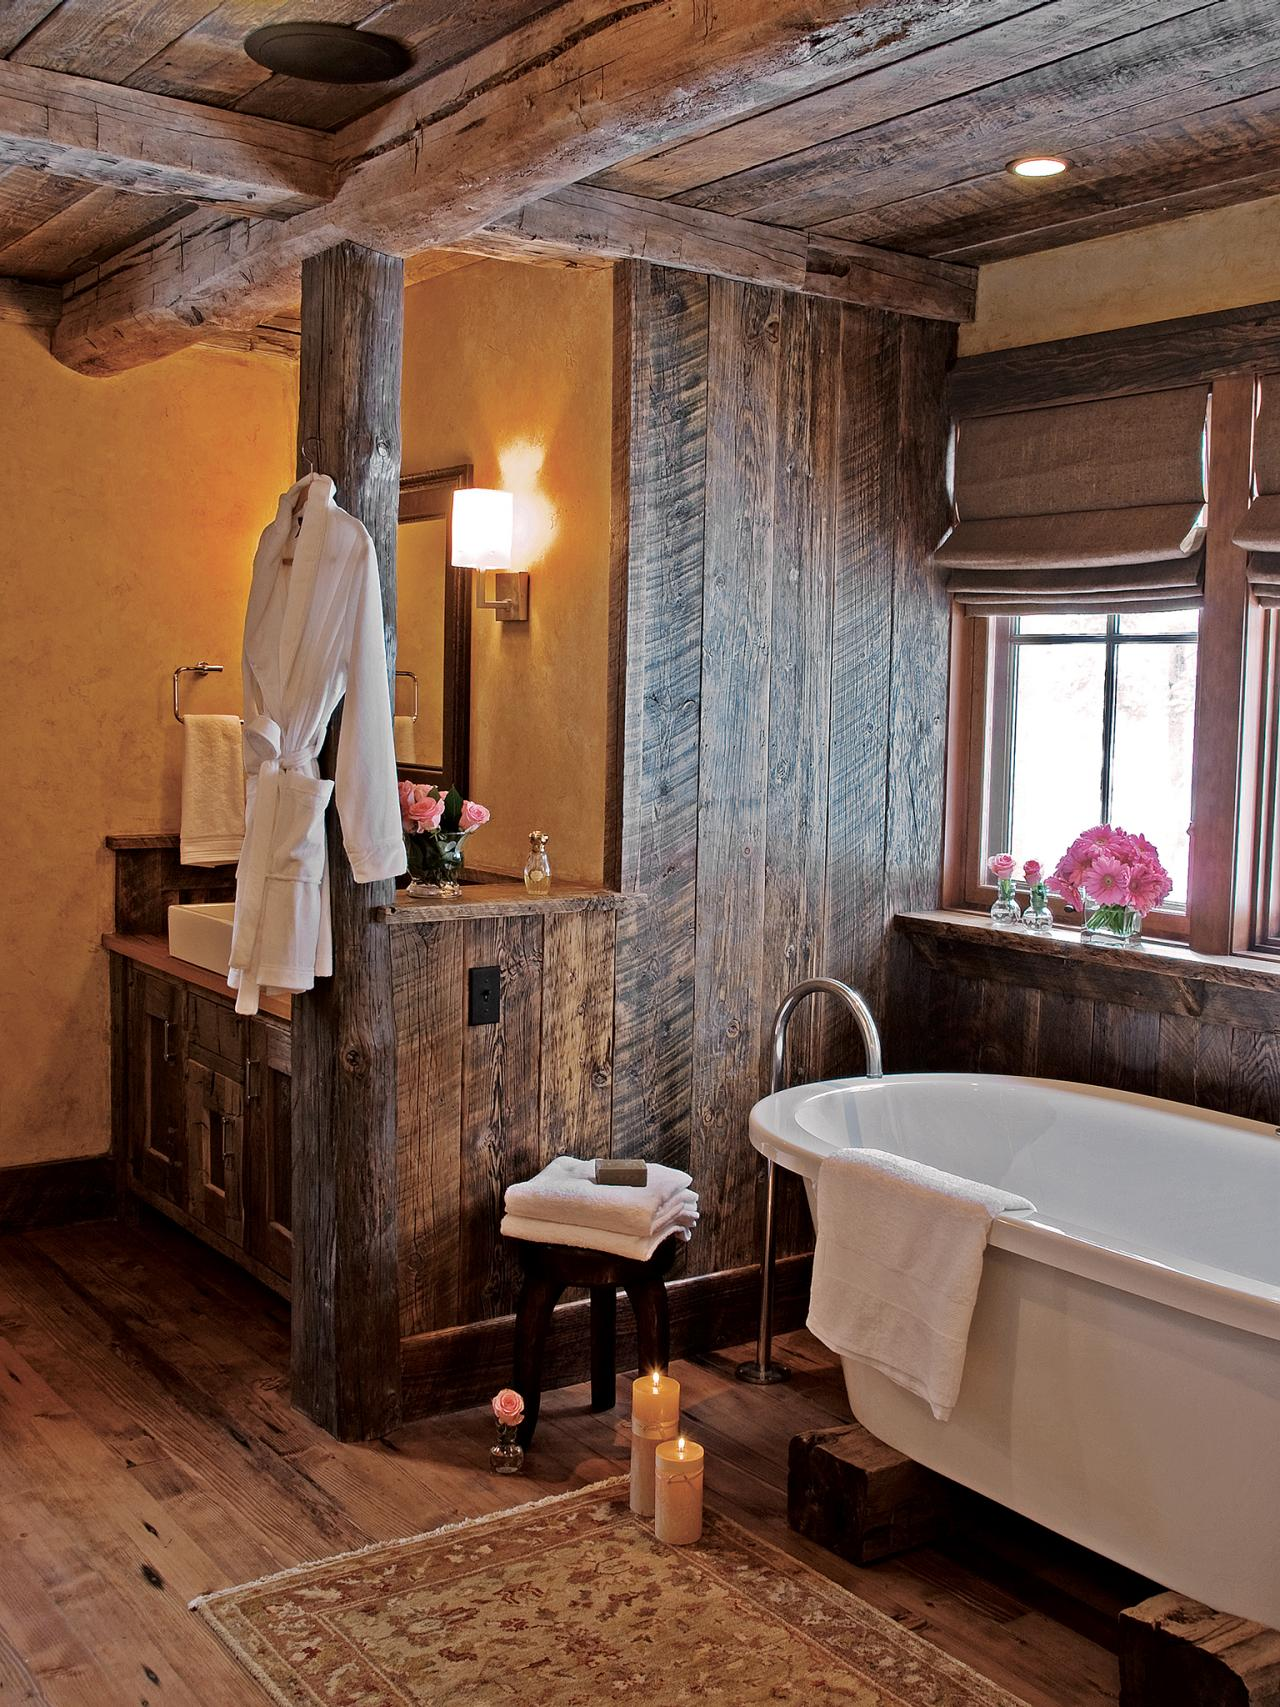 Country Western Bathroom Decor: HGTV Pictures & Ideas | HGTV